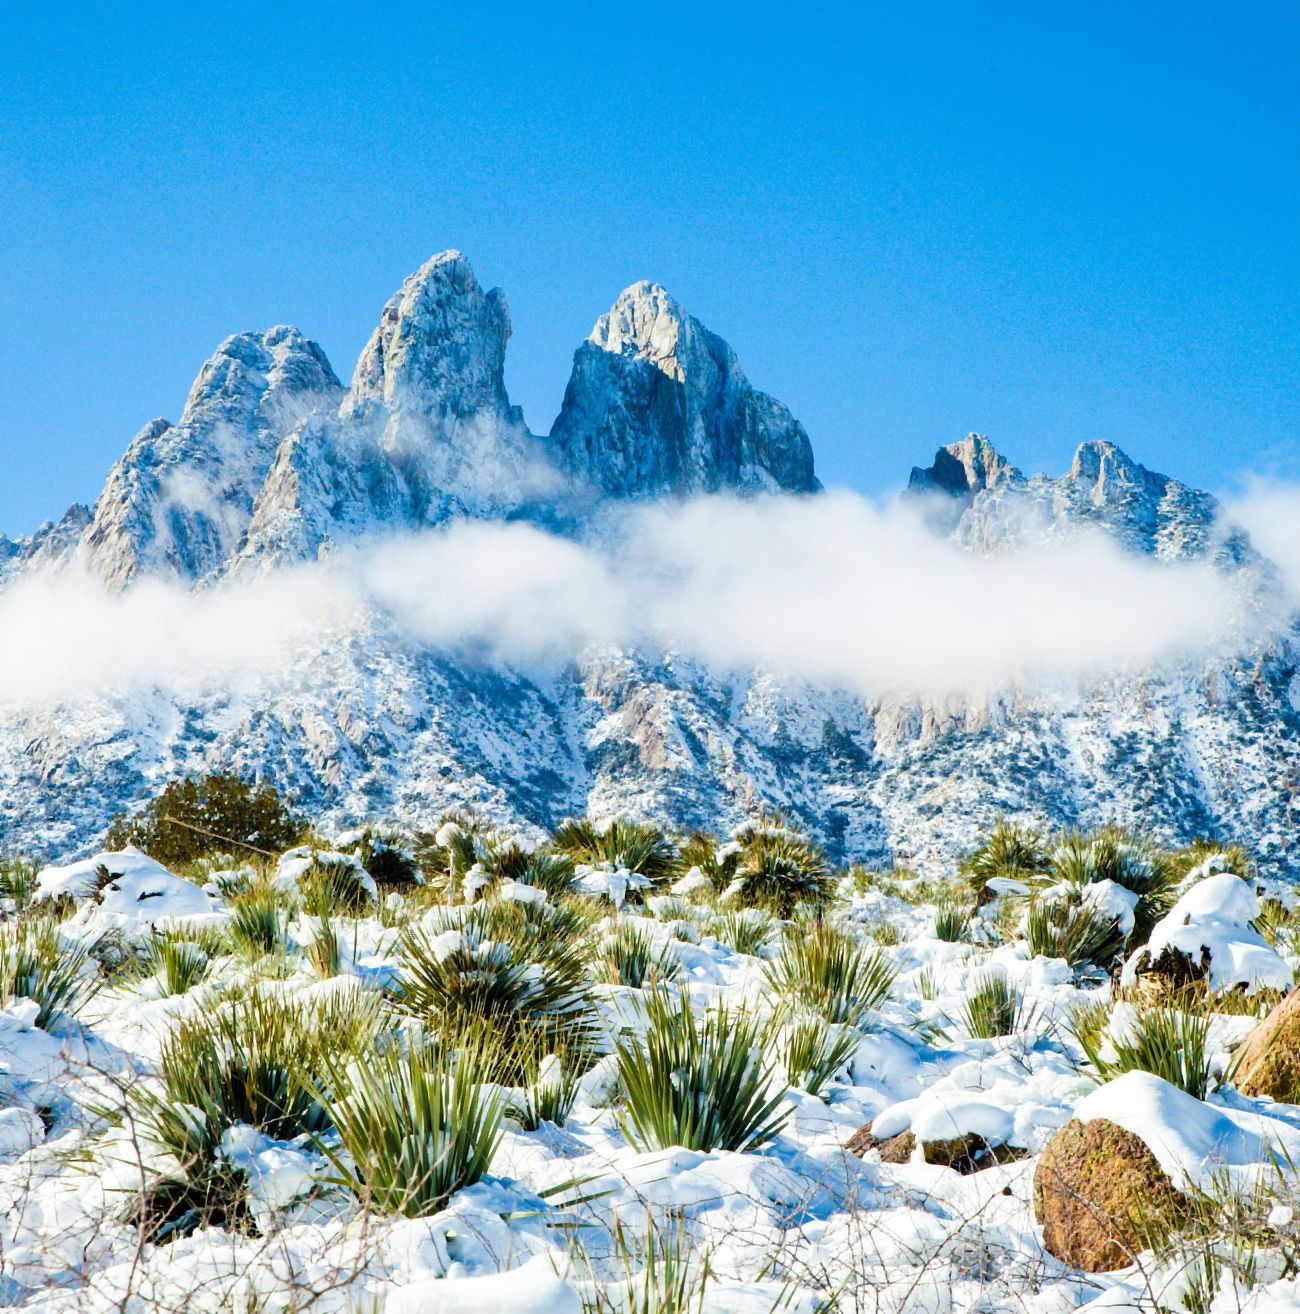 Snow And Chilled Mist Linger On The Arid Landscape Of Organ Mountains Desert Peaks National Monument In New M In 2020 With Images Land Of Enchantment New Mexico National Monuments